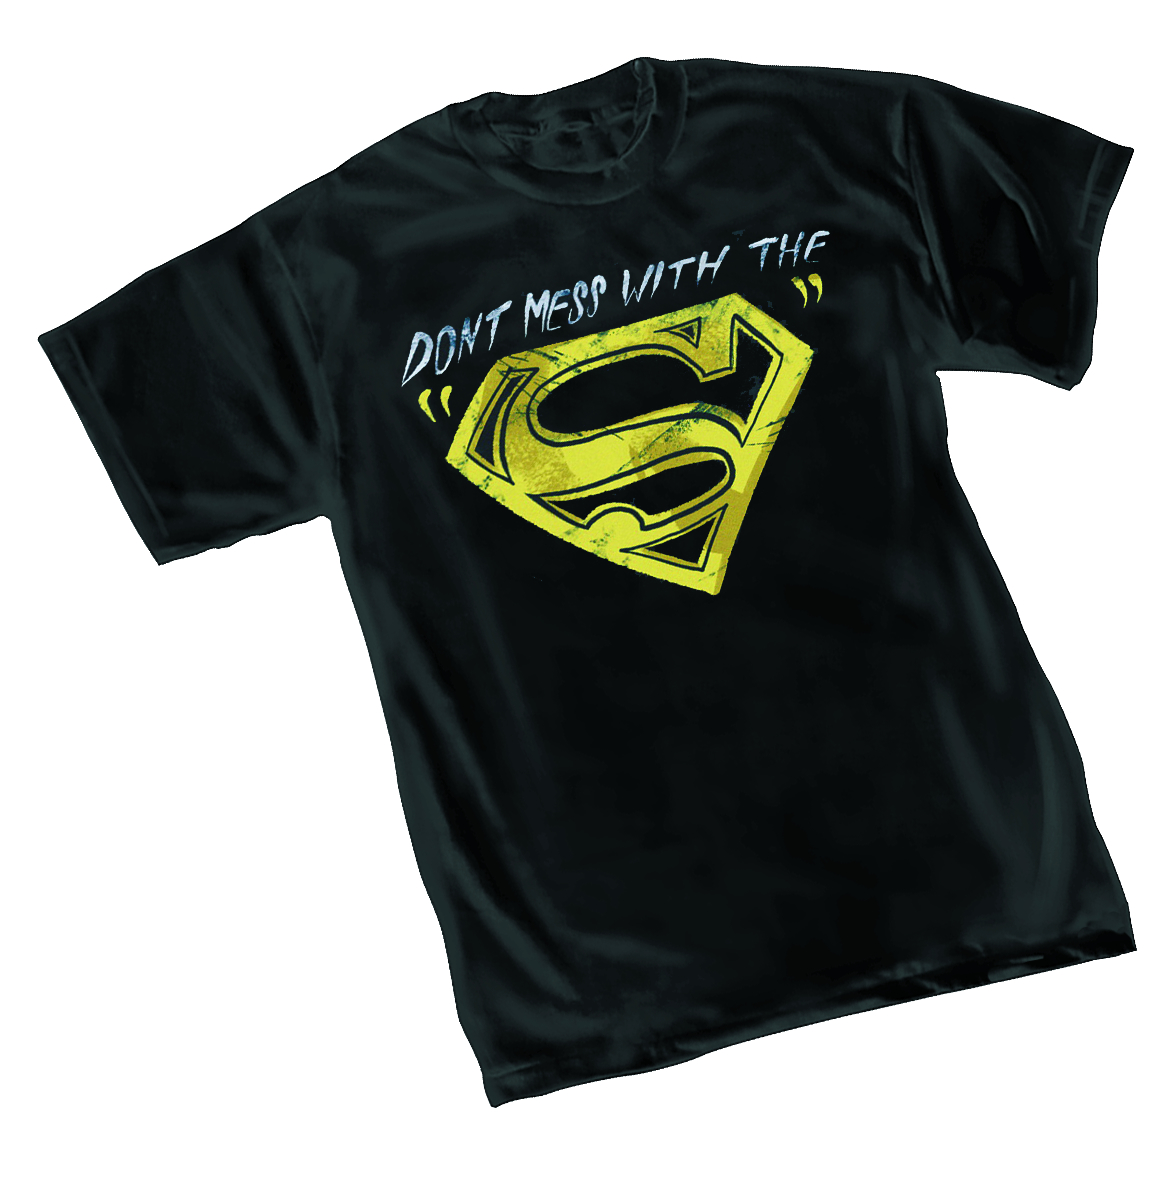 SUPERBOY DMW BY TARR T/S LG